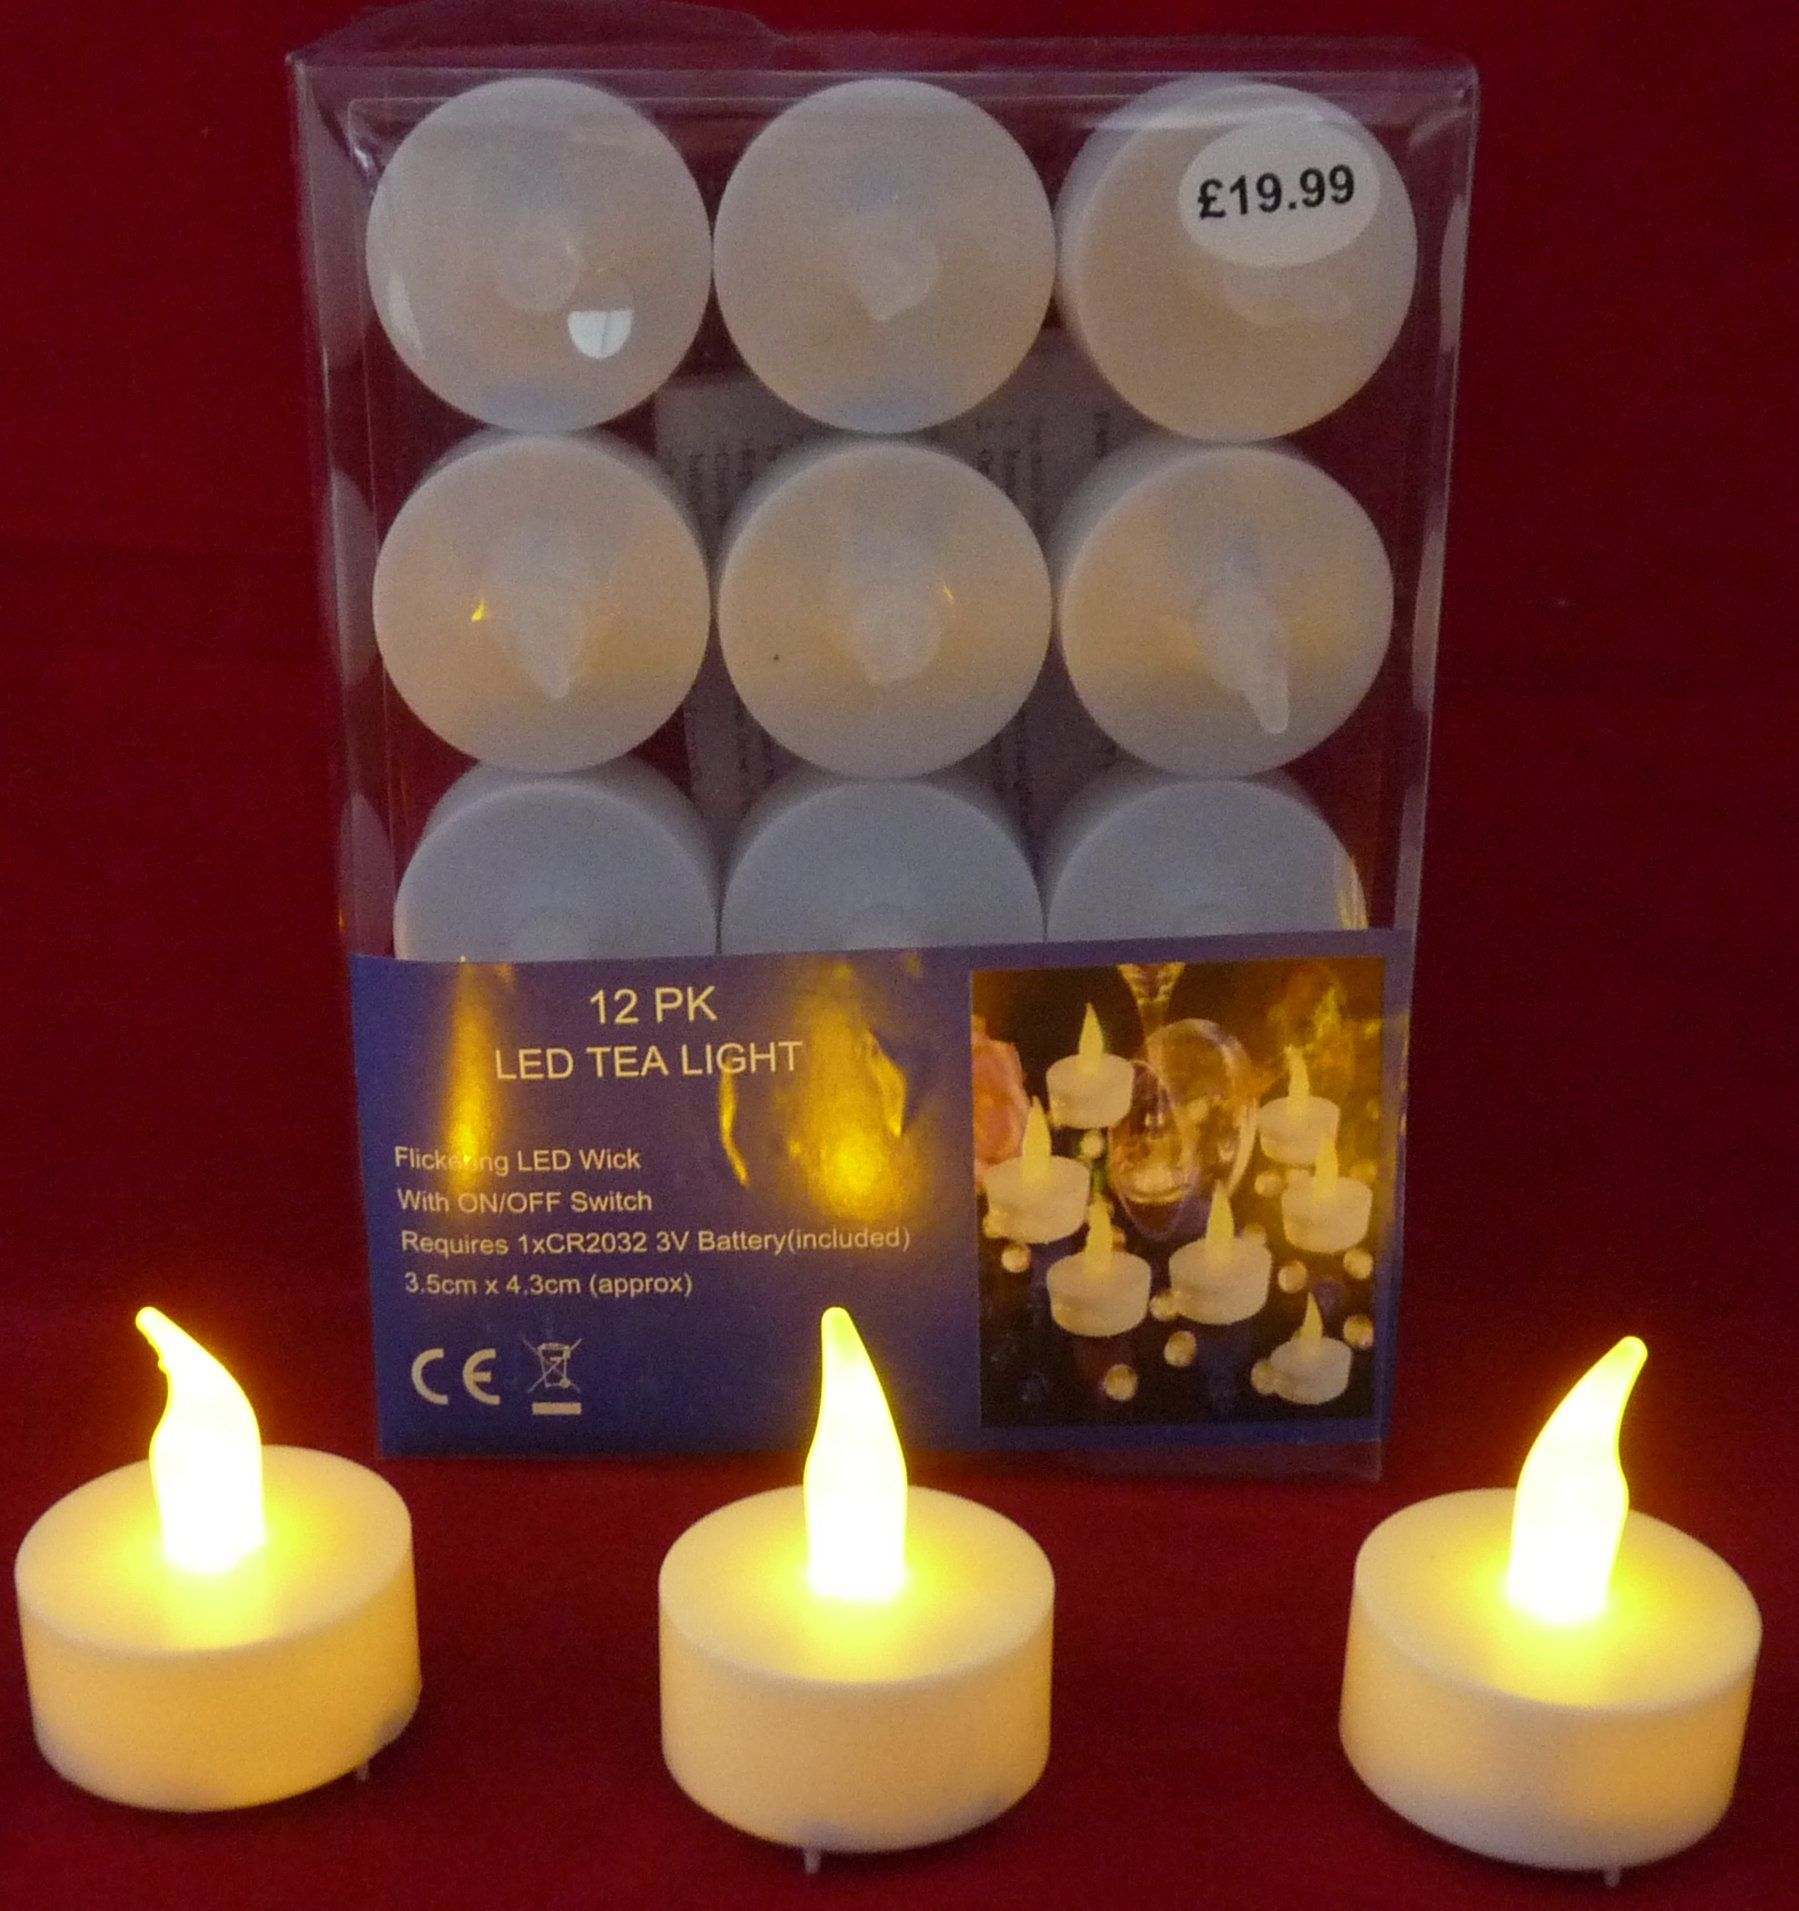 12 LED Flickering Tealight Candles Flameless Tea Light Battery Operated Look Like Real Flicker Candles Wedding Long Lasting: Amazon.co.uk: Kitchen & Home